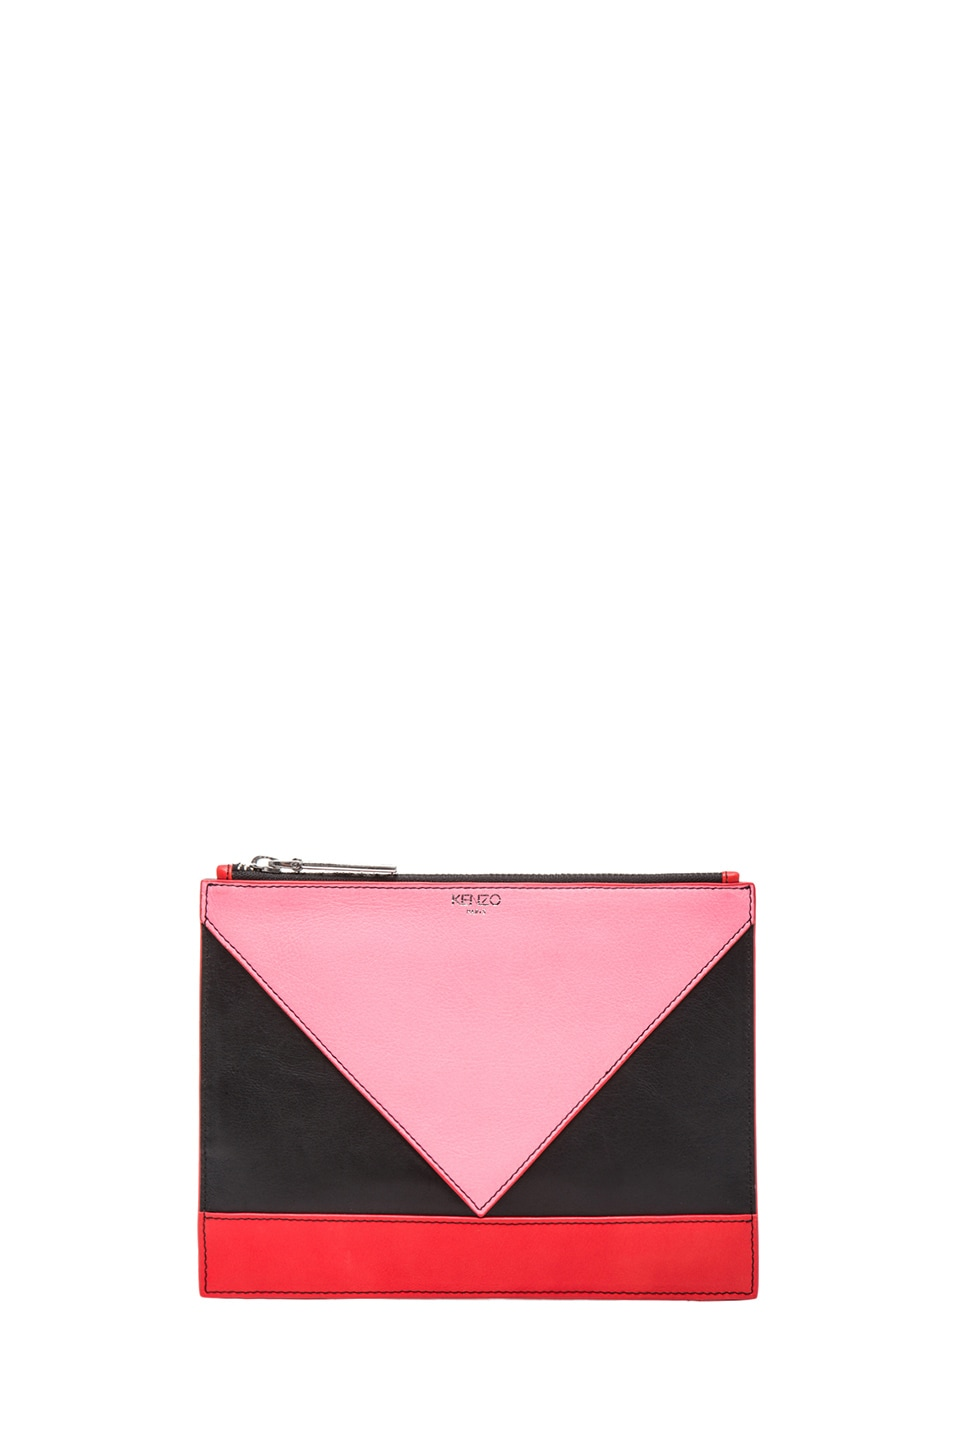 Image 1 of KENZO Colorblock Small Kalifornia Clutch in Fluorescent Pink, Black & Orange